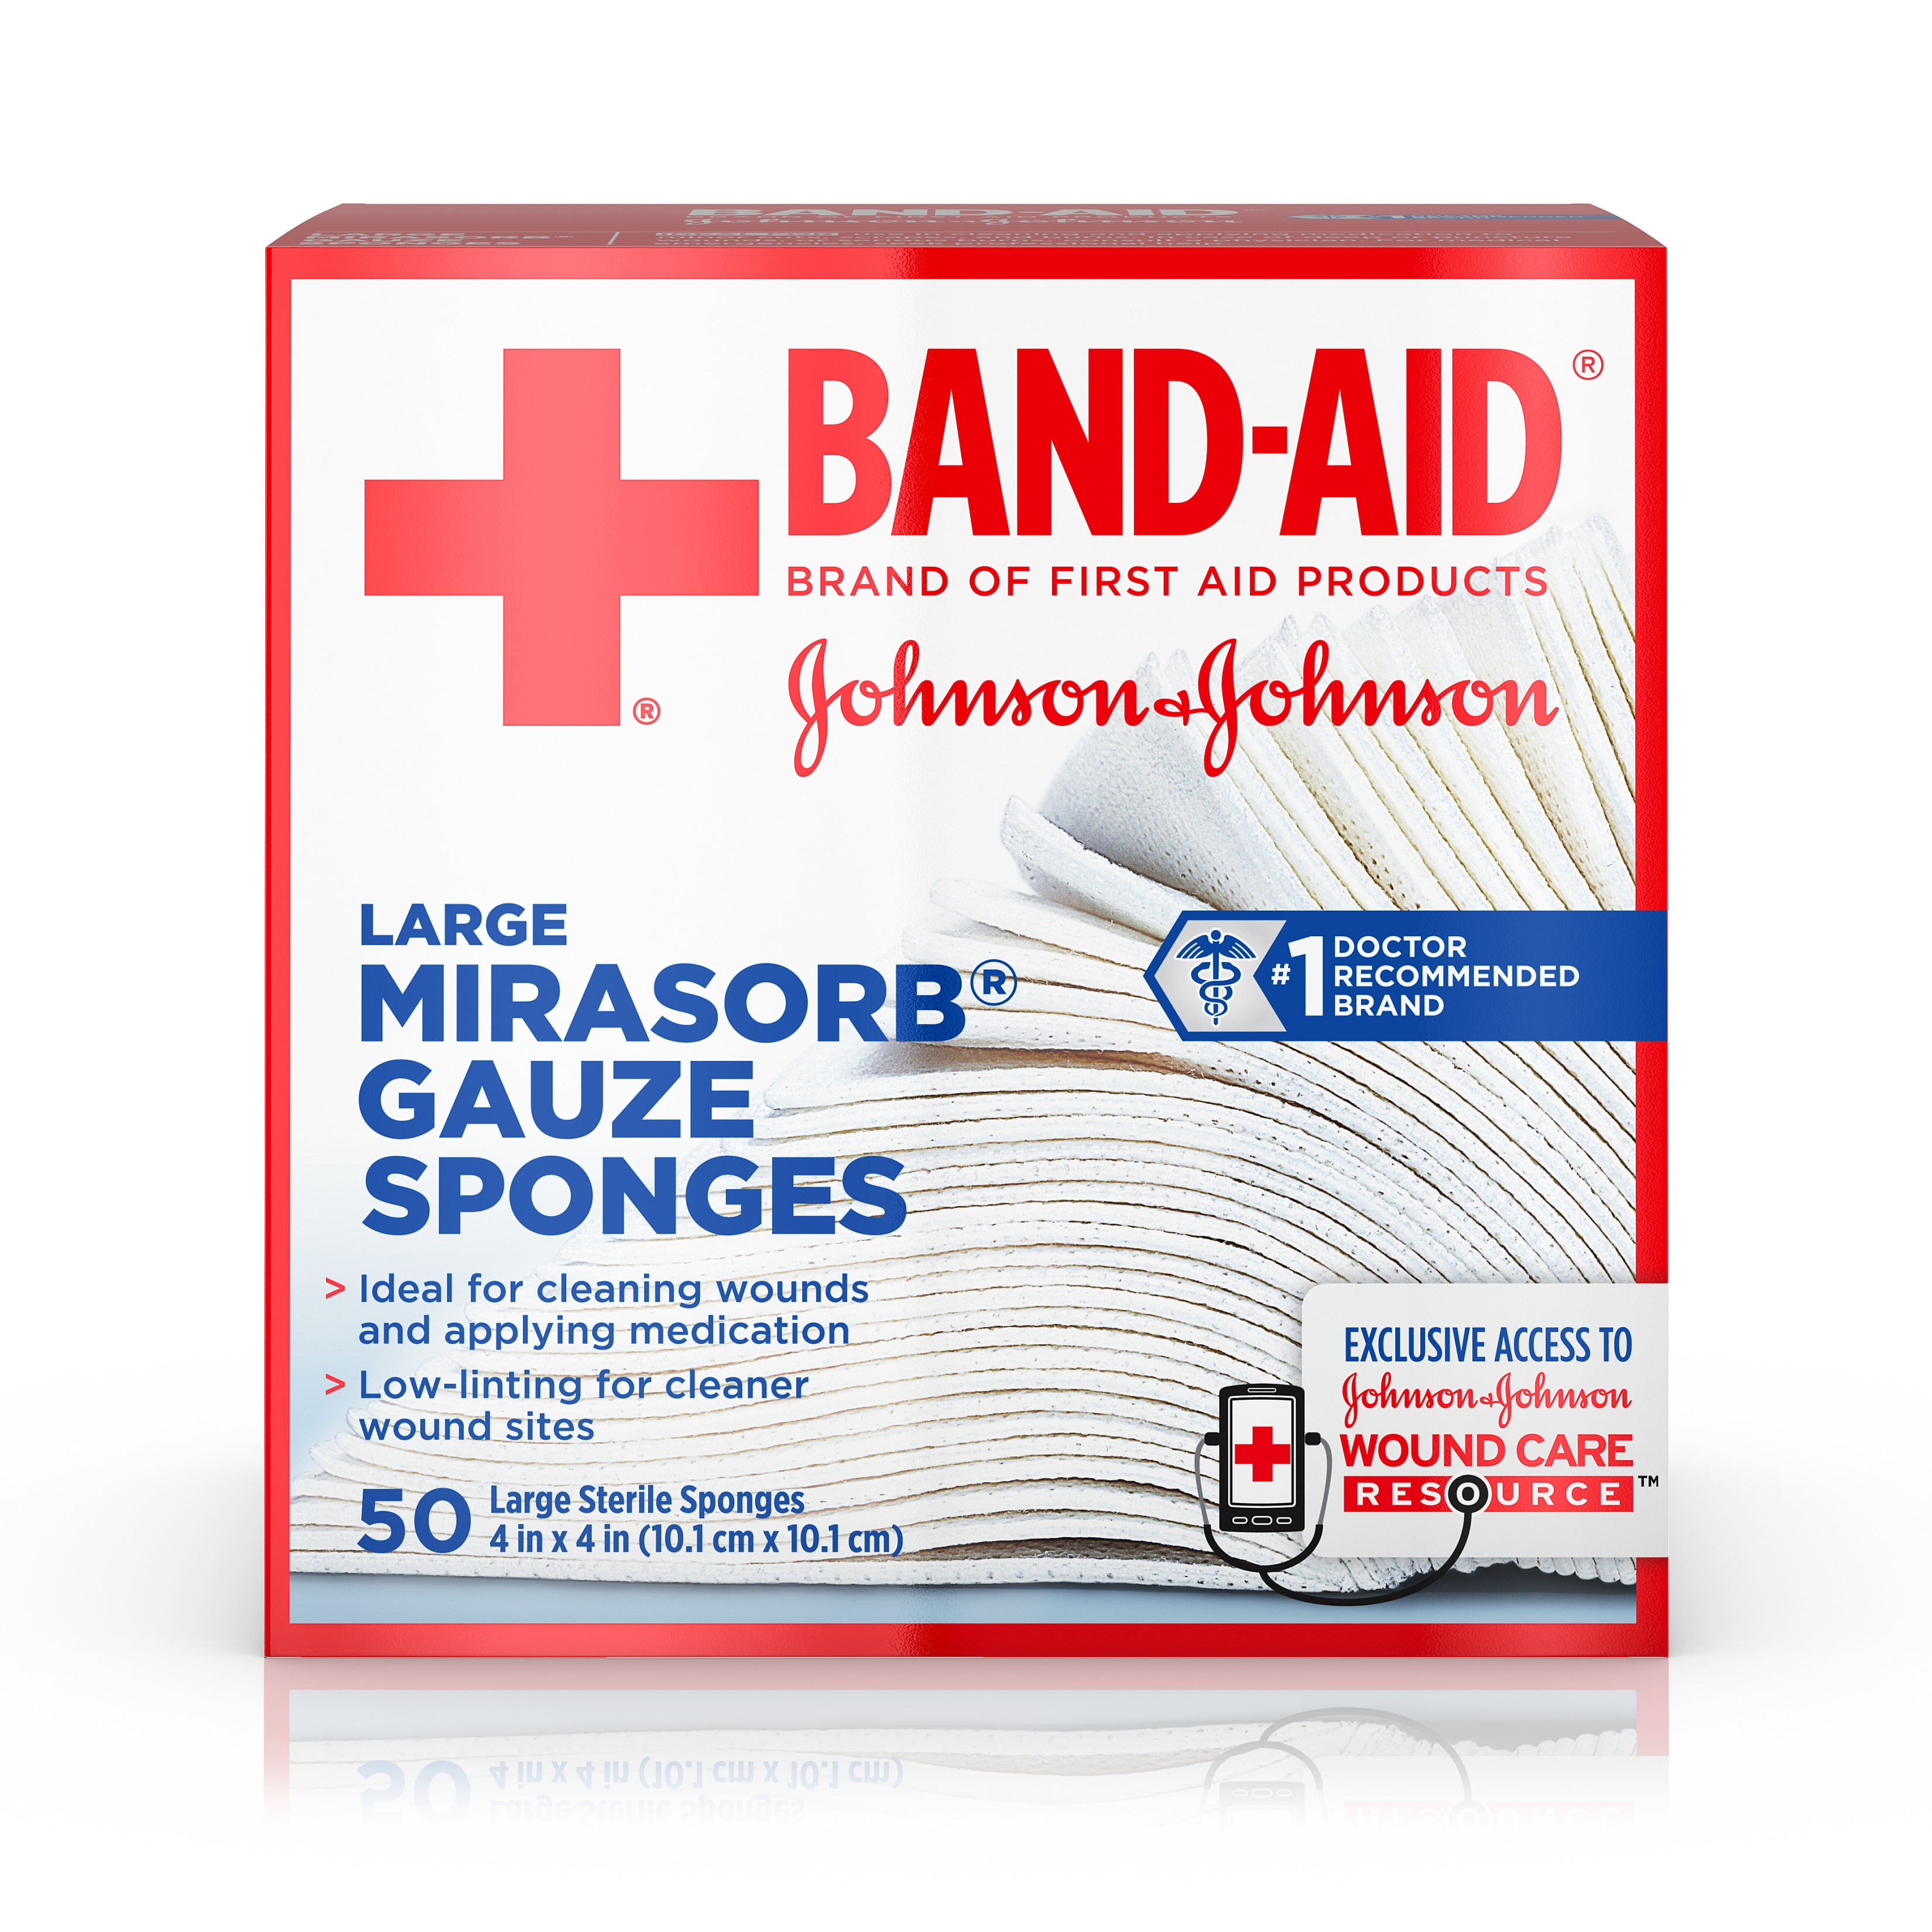 BAND-AID® Brand of First Aid Products MIRASORB® Gauze Sponges for Cleaning Wounds, 4 Inches by 4 Inches, 50 Count